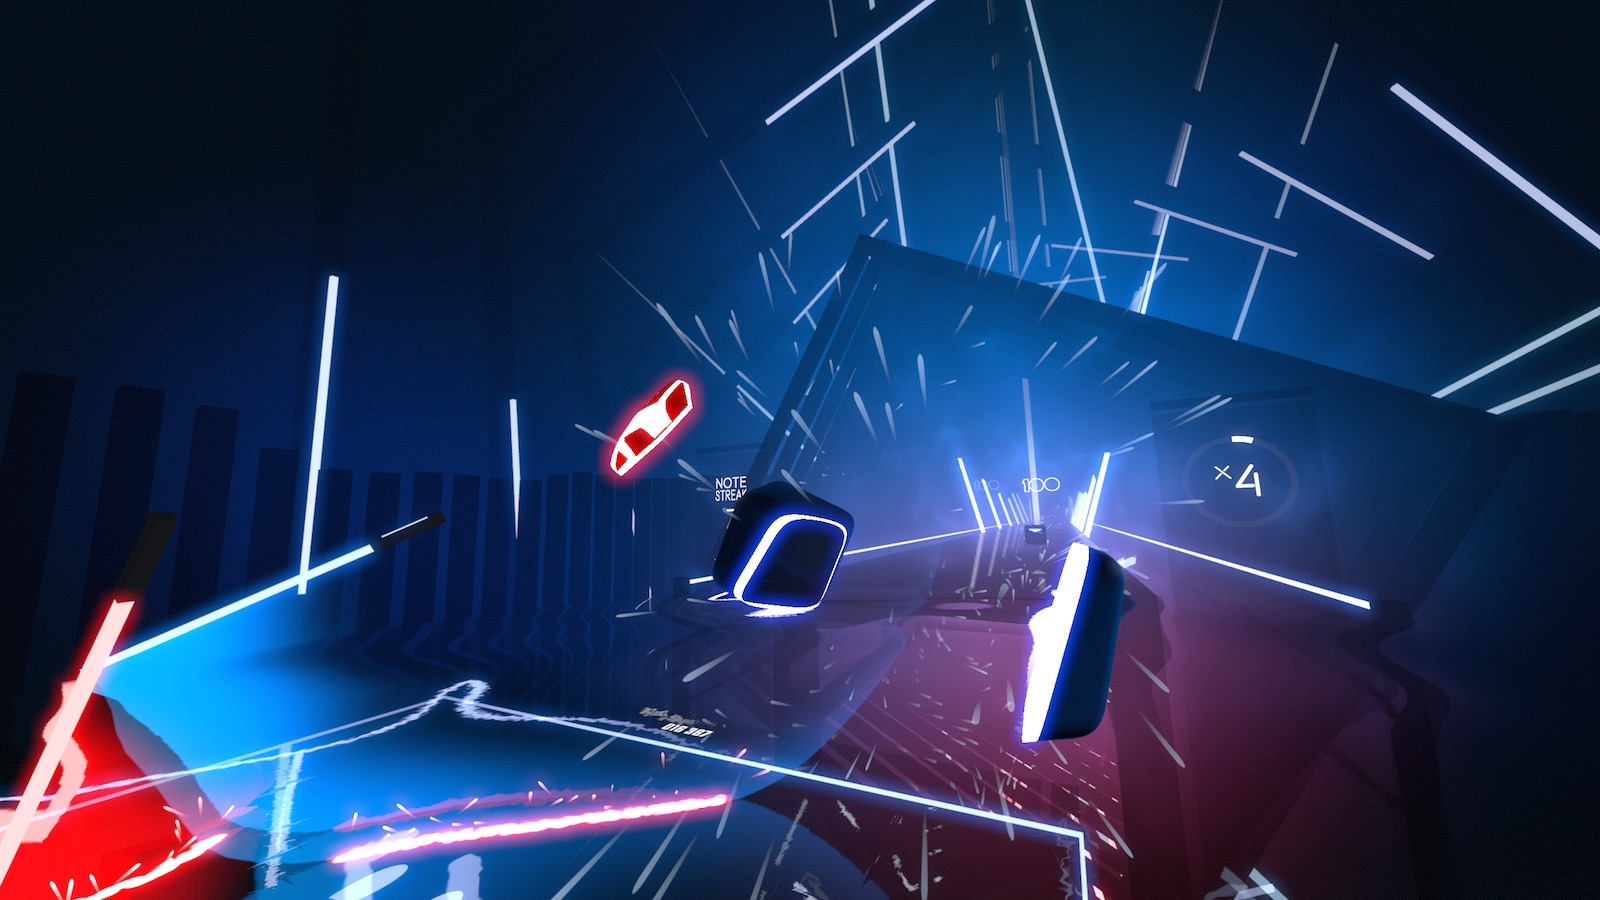 Beat Saber Delays Level Editor Announcement Due To Technical Issues